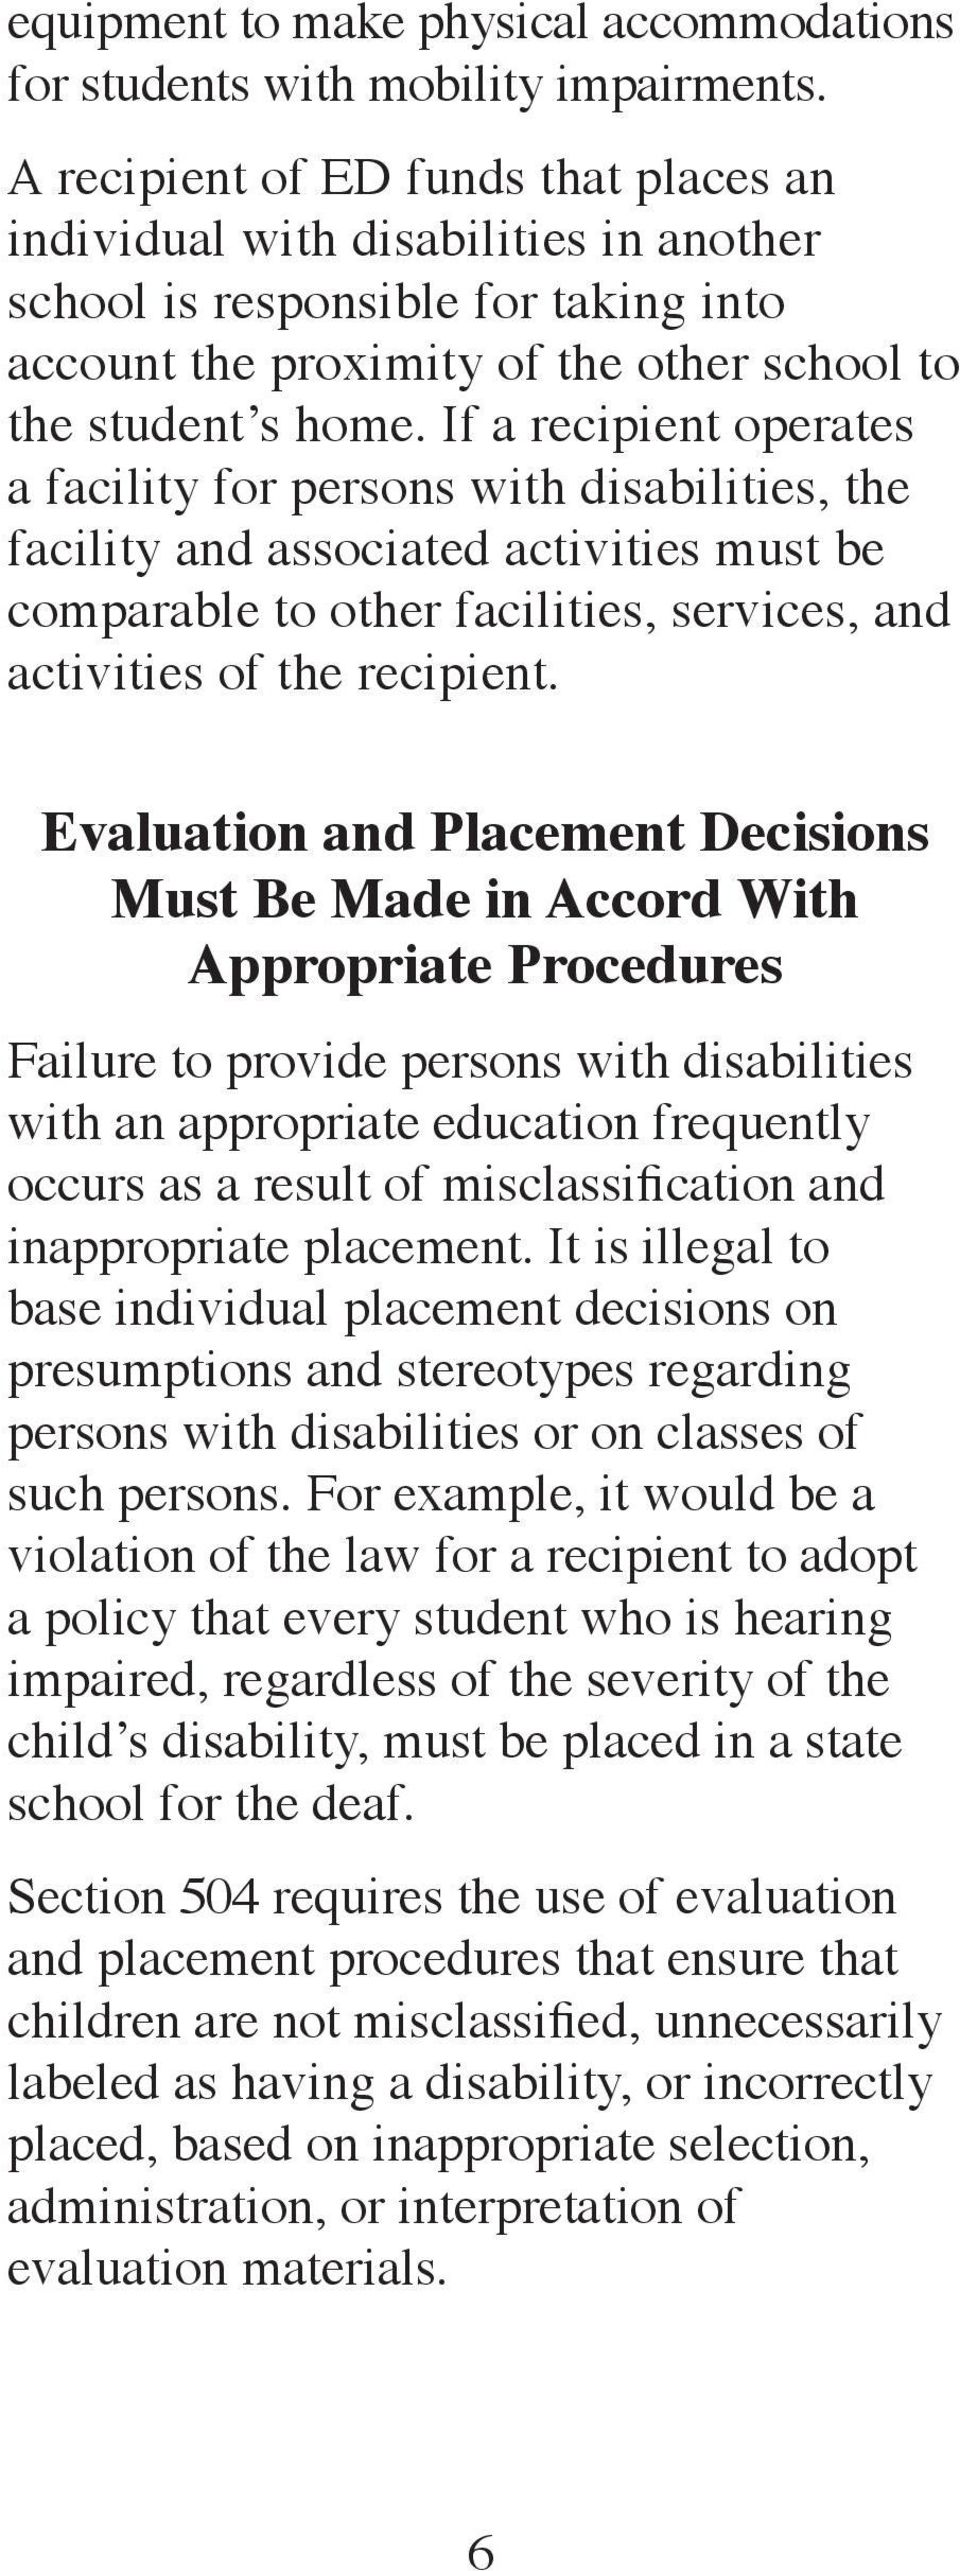 If a recipient operates a facility for persons with disabilities, the facility and associated activities must be comparable to other facilities, services, and activities of the recipient.